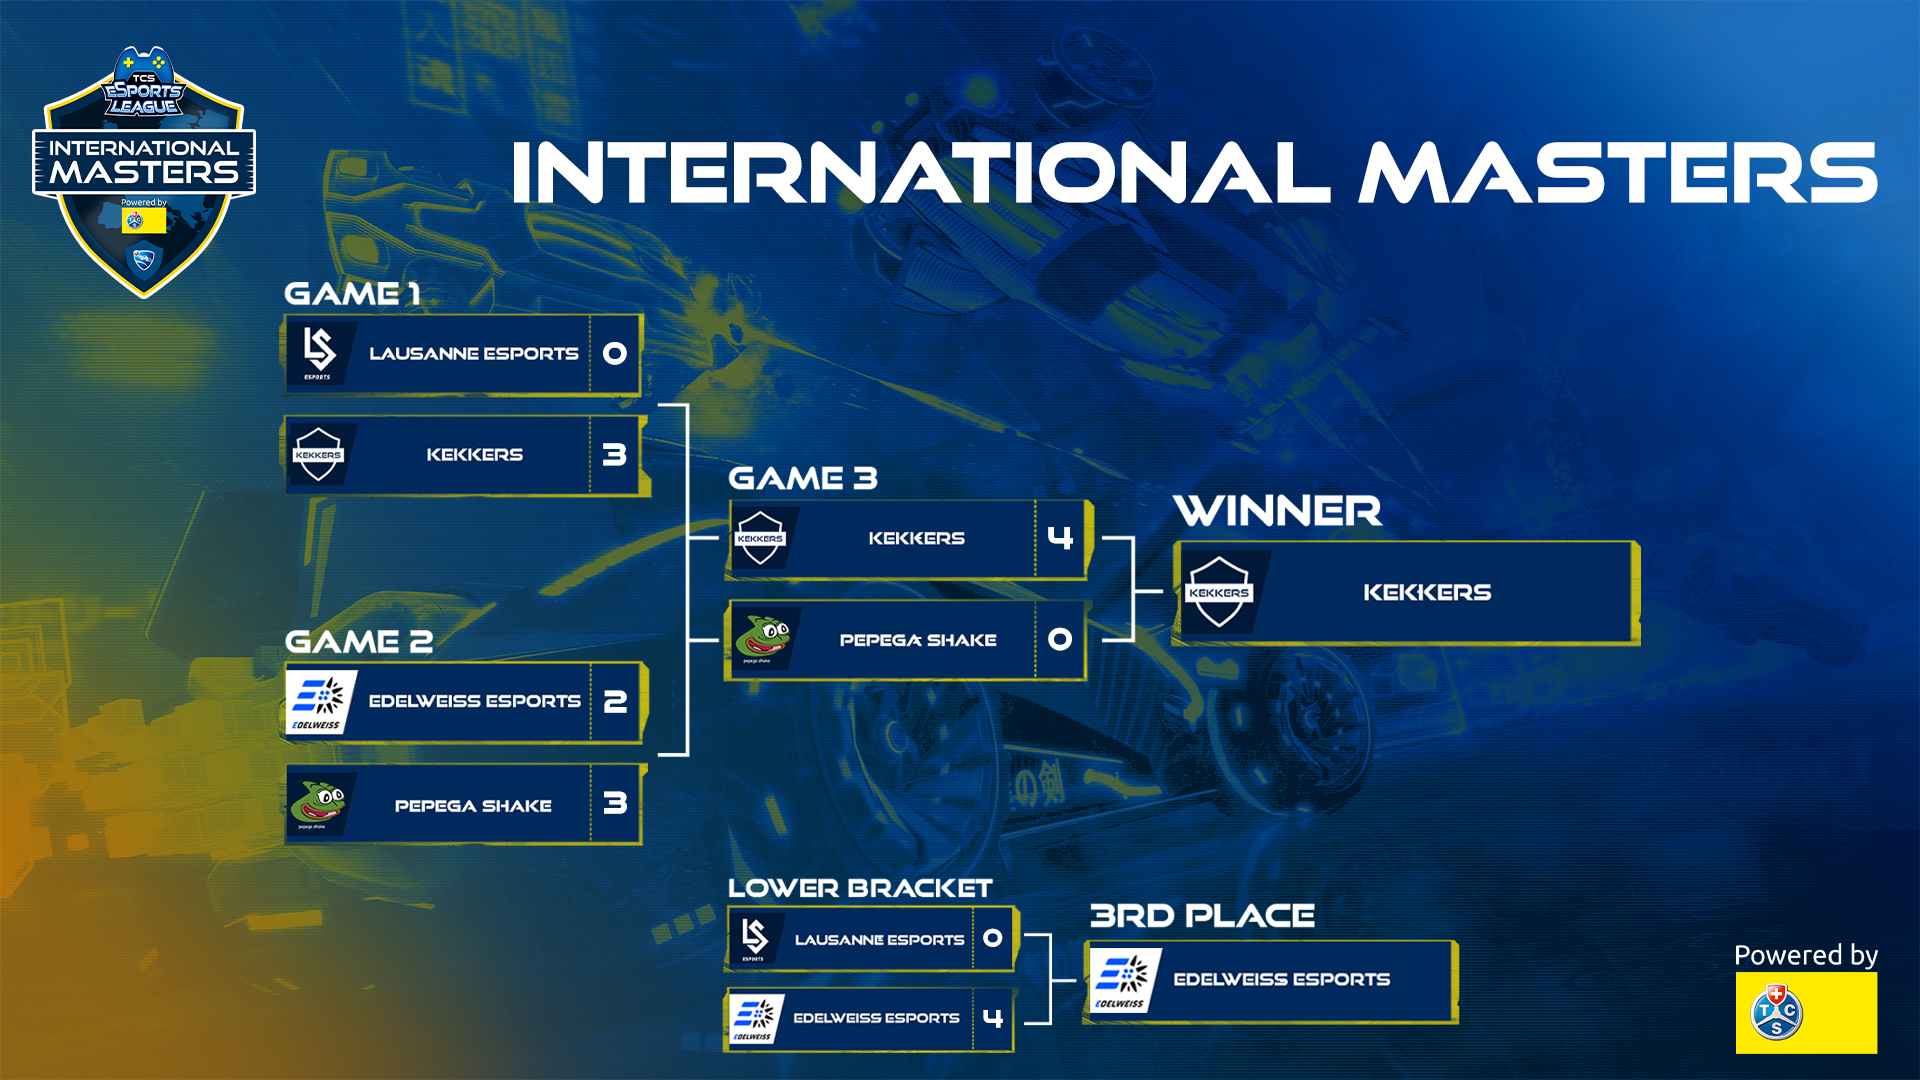 International Masters bracket